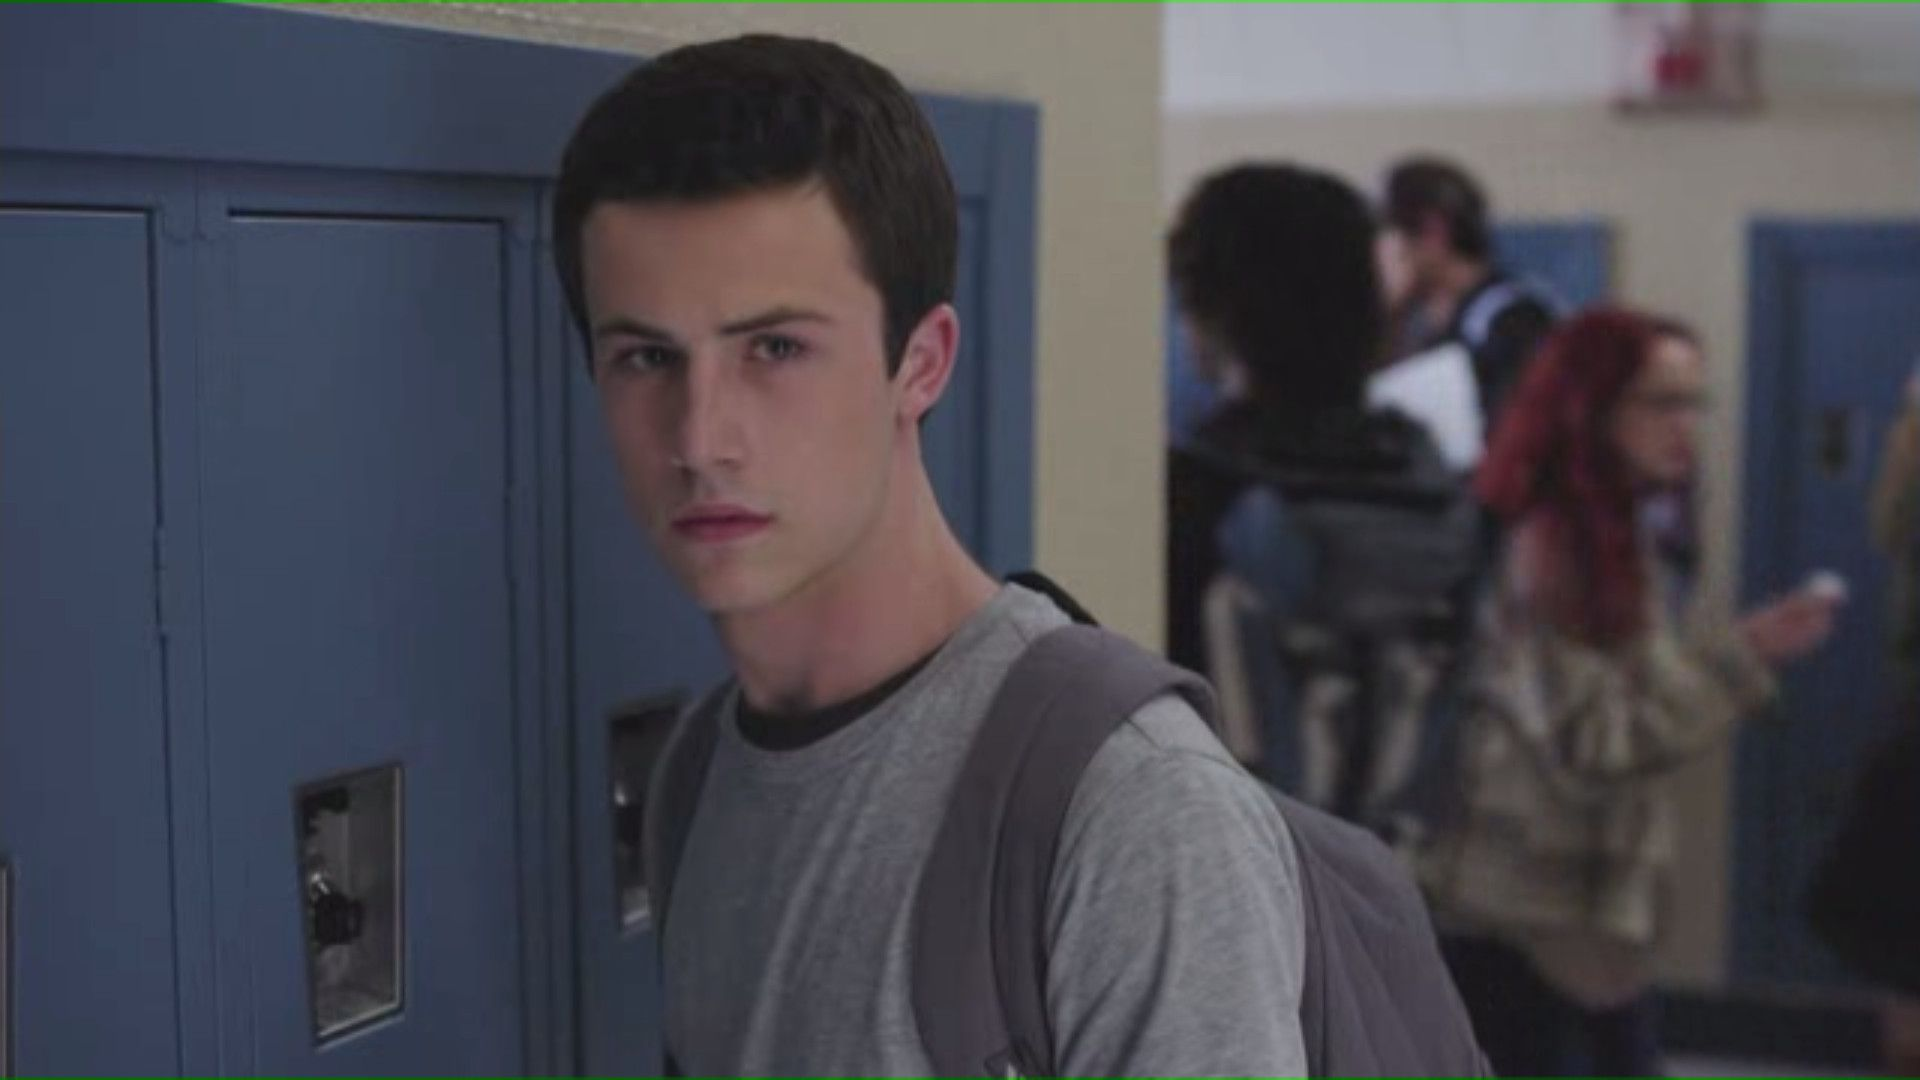 13 Reasons Why season 3: Expected release date and cast